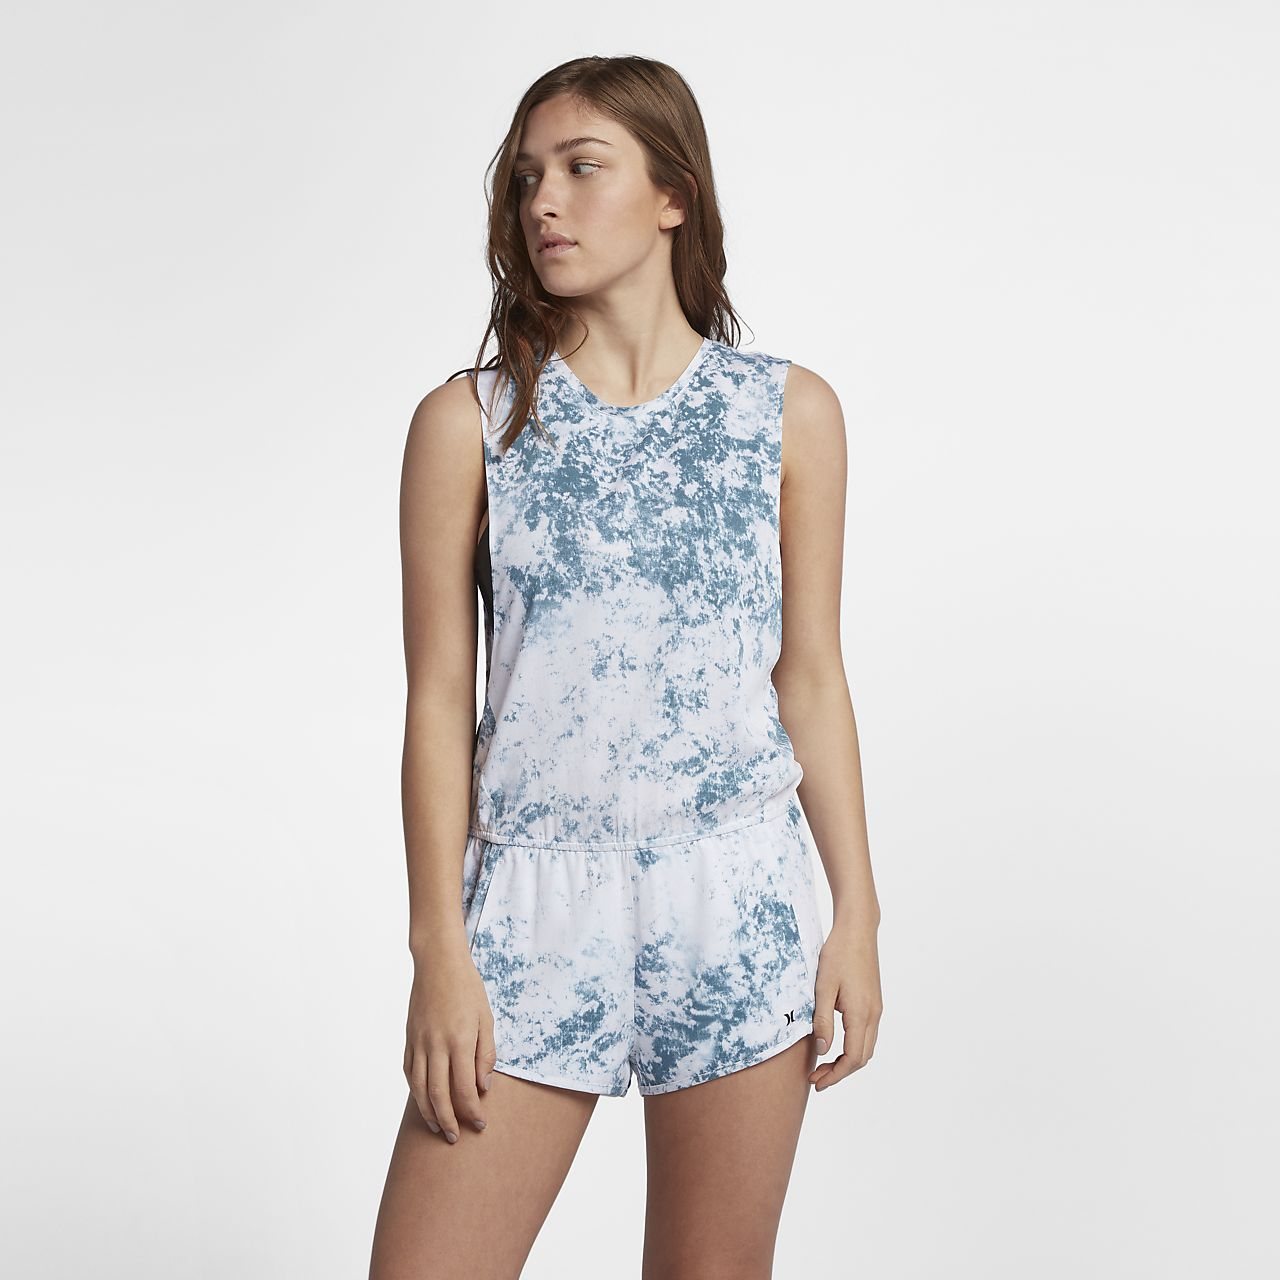 Nike Hurley Wash Women's Romper Cheap Price Original Finishline Online Discount Codes Clearance Store 4X3KPP